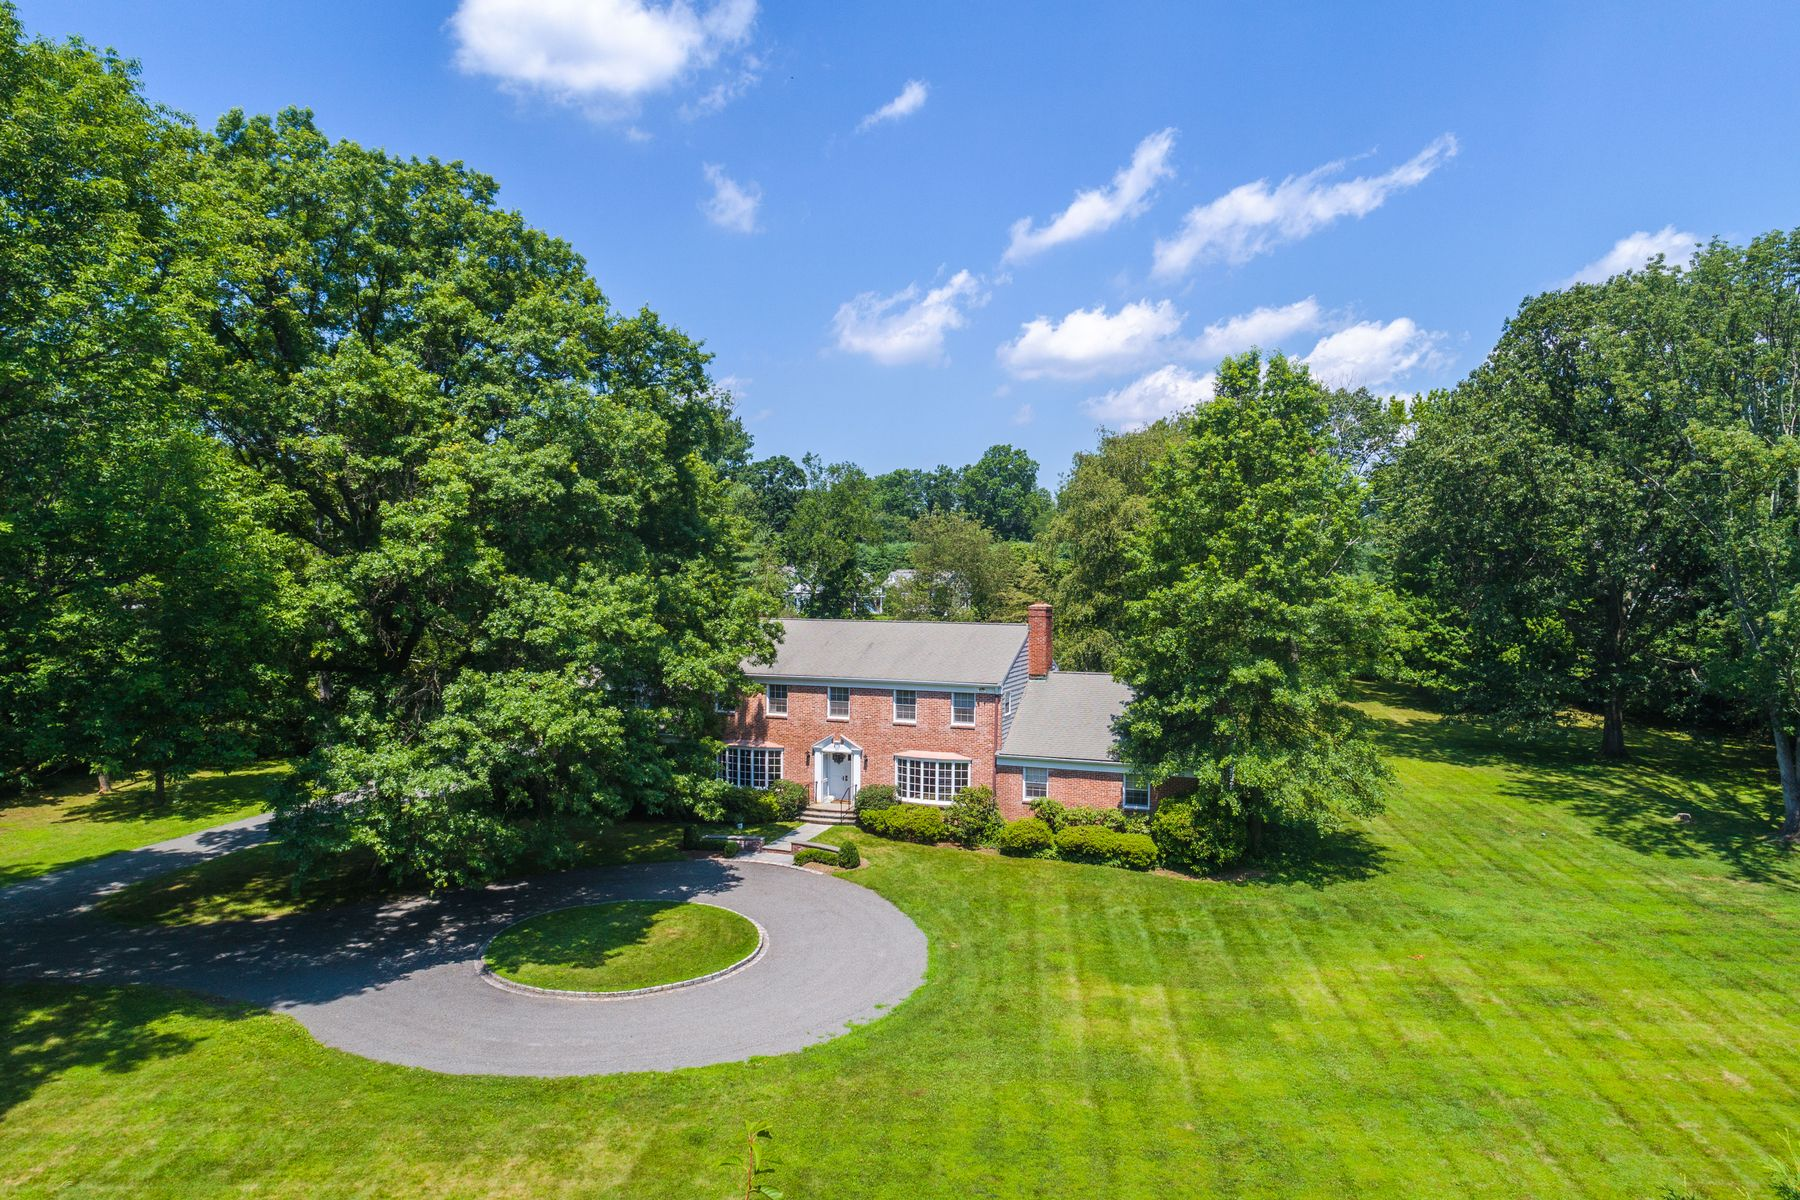 Single Family Homes for Sale at 33 Meadowcroft Lane Greenwich, Connecticut 06830 United States